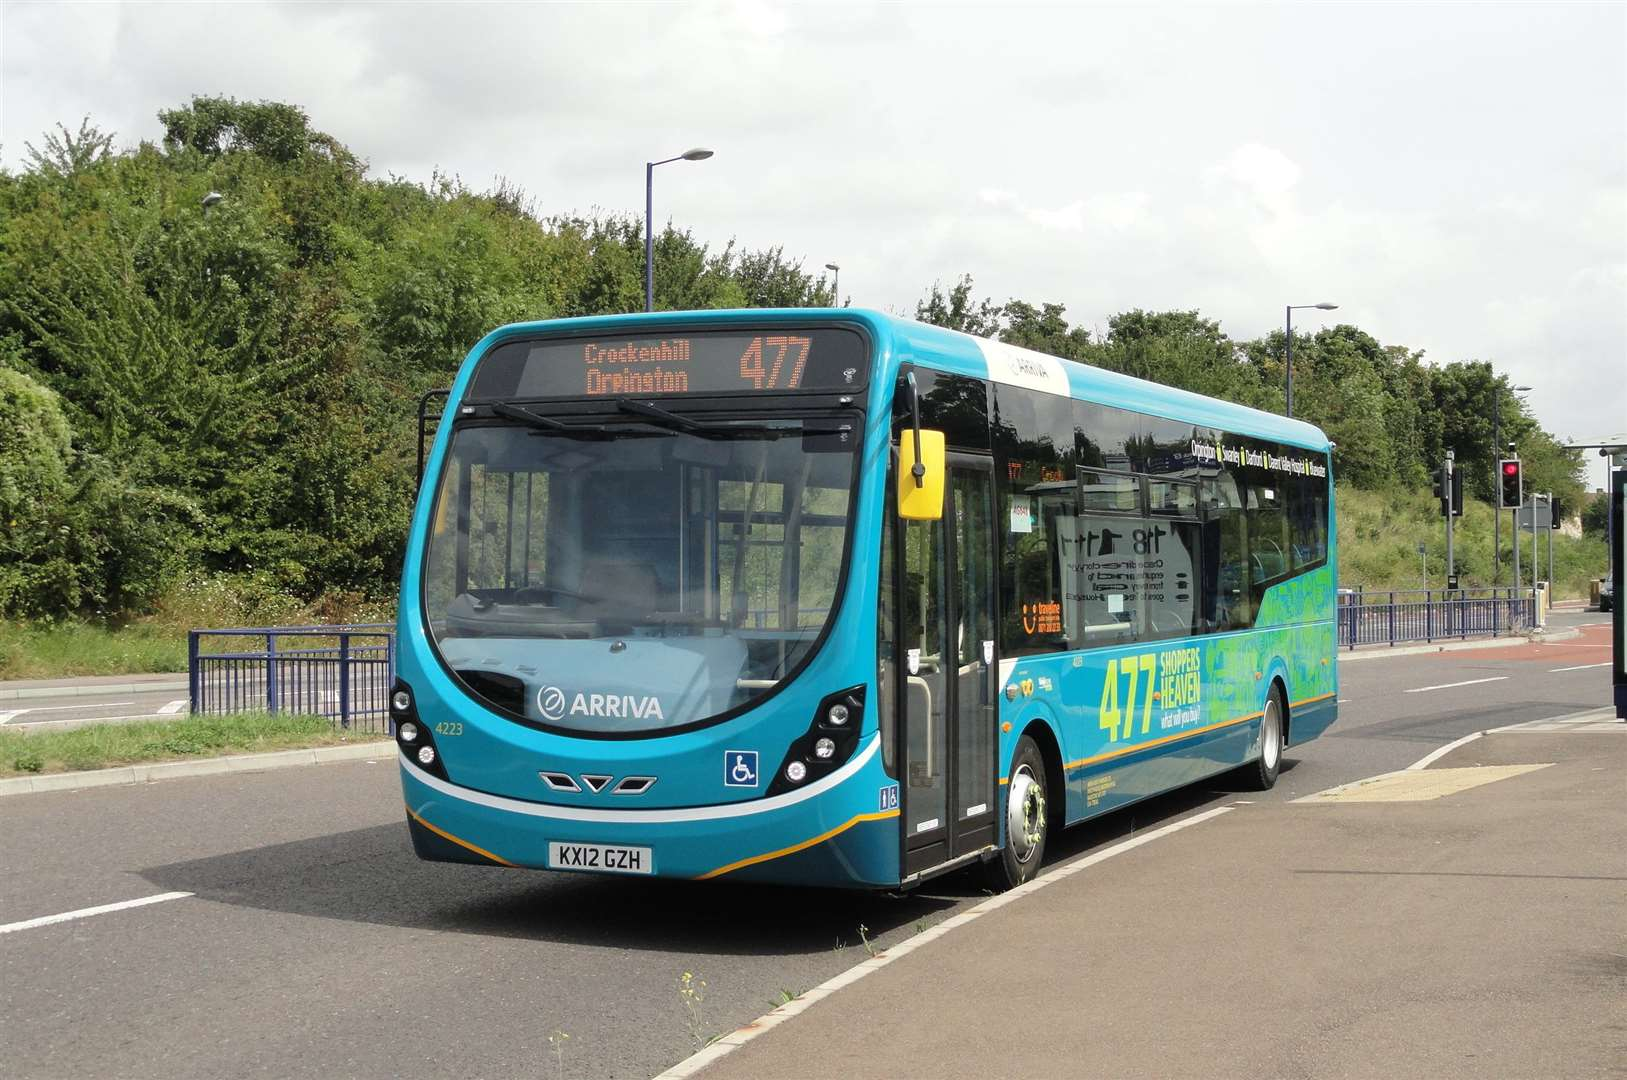 An Arriva bus. Stock image